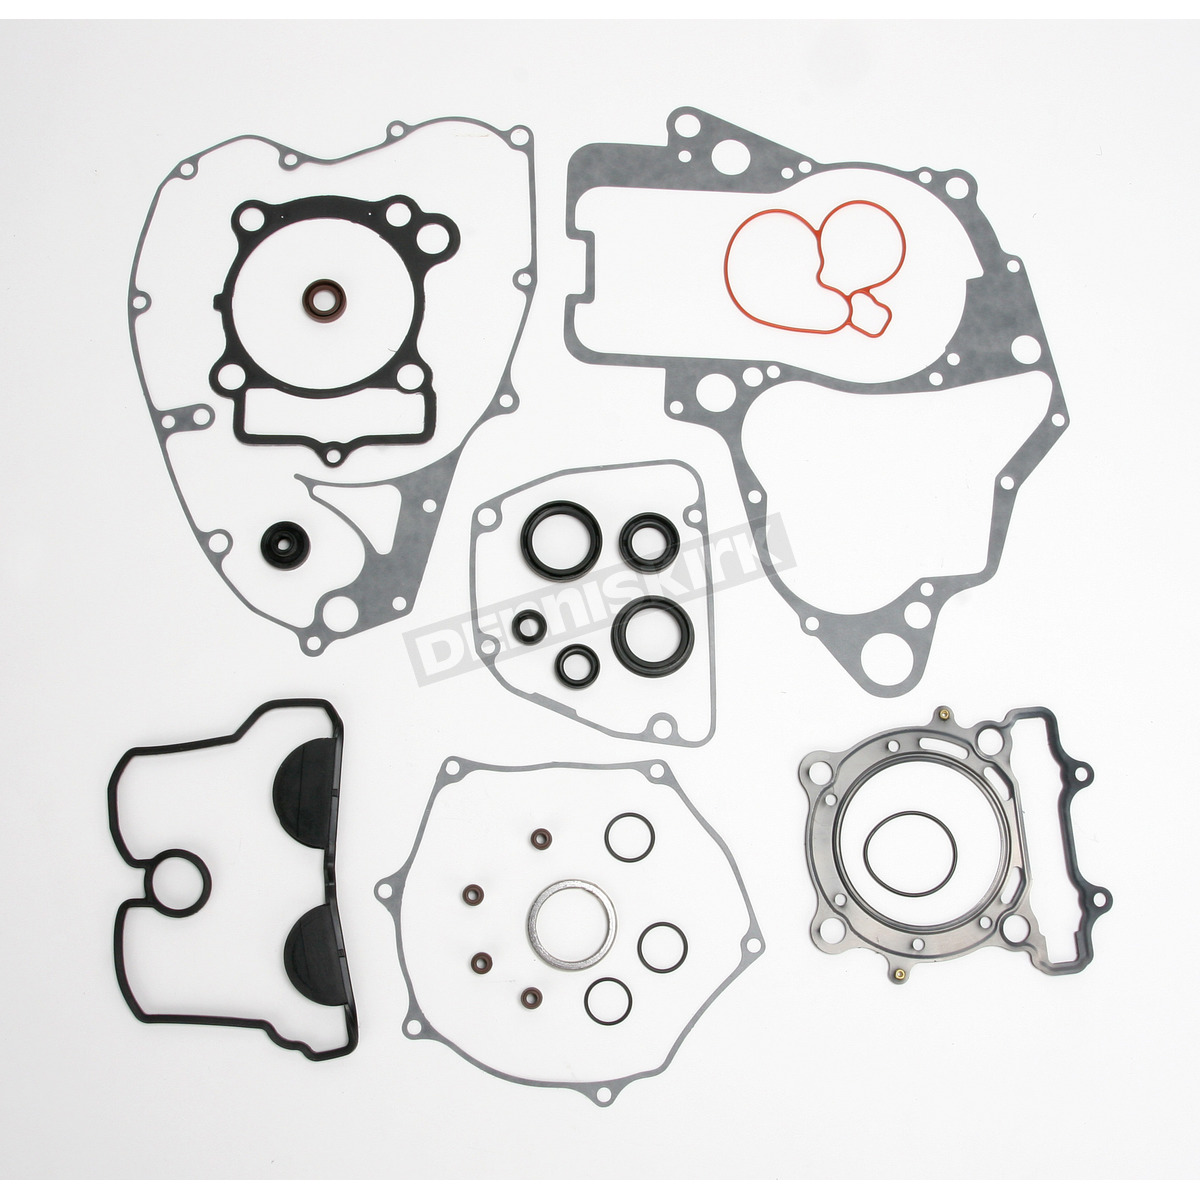 hight resolution of complete gasket set with oil seals 0934 1481